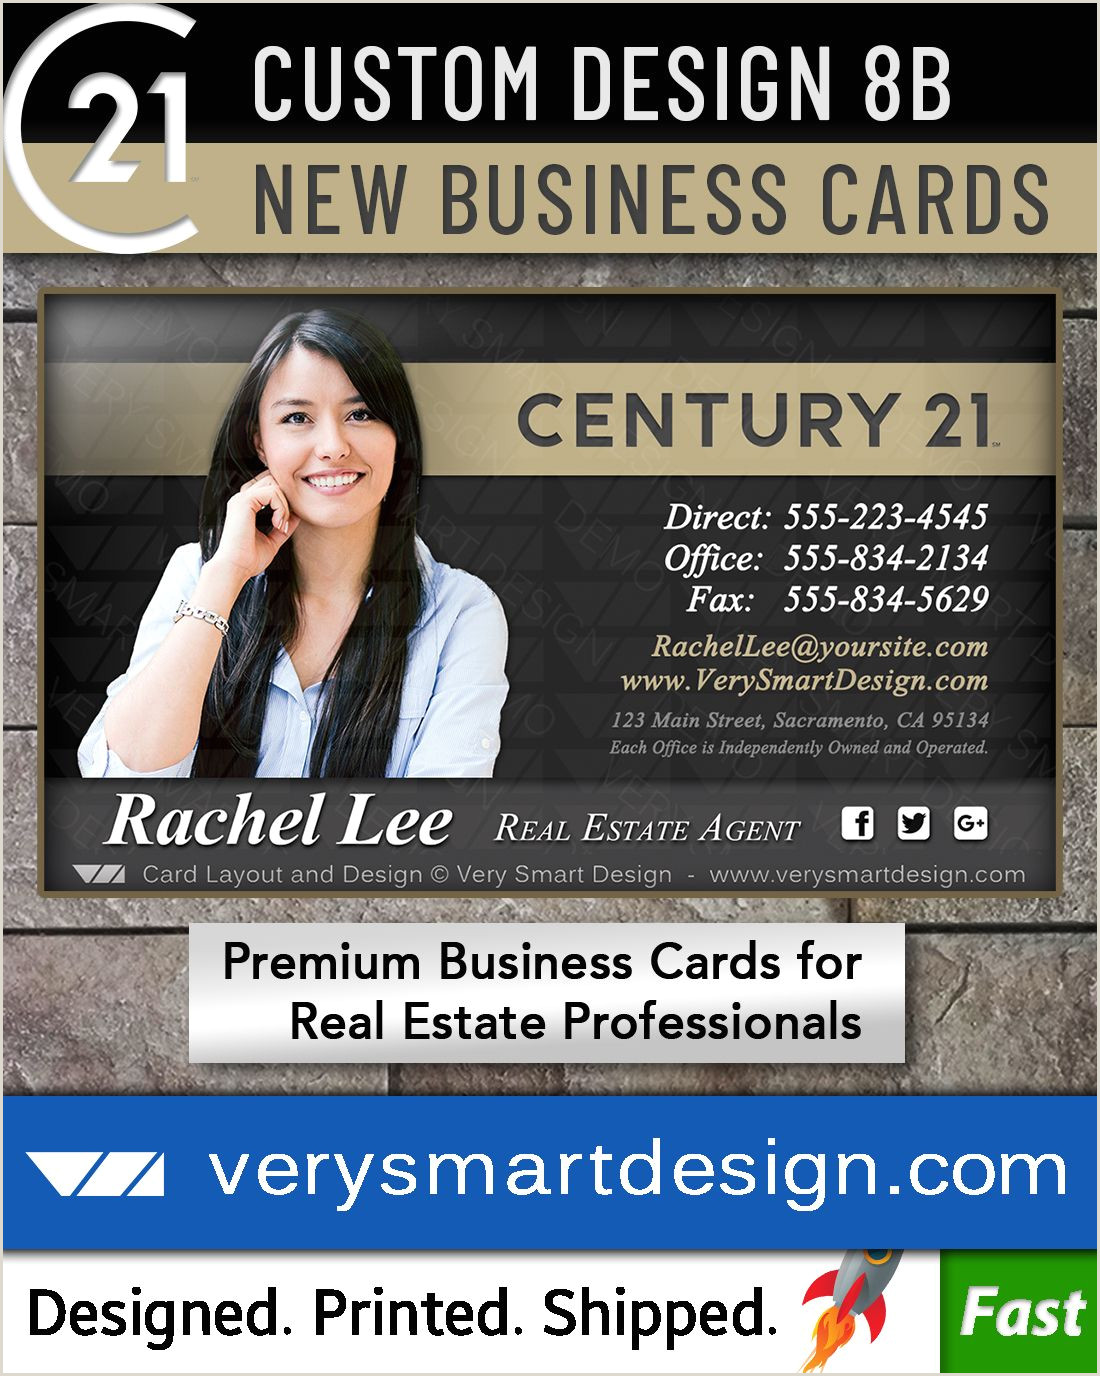 Unique Business Cards Headshot New C21 Logo Agent Real Estate Business Cards Century 21